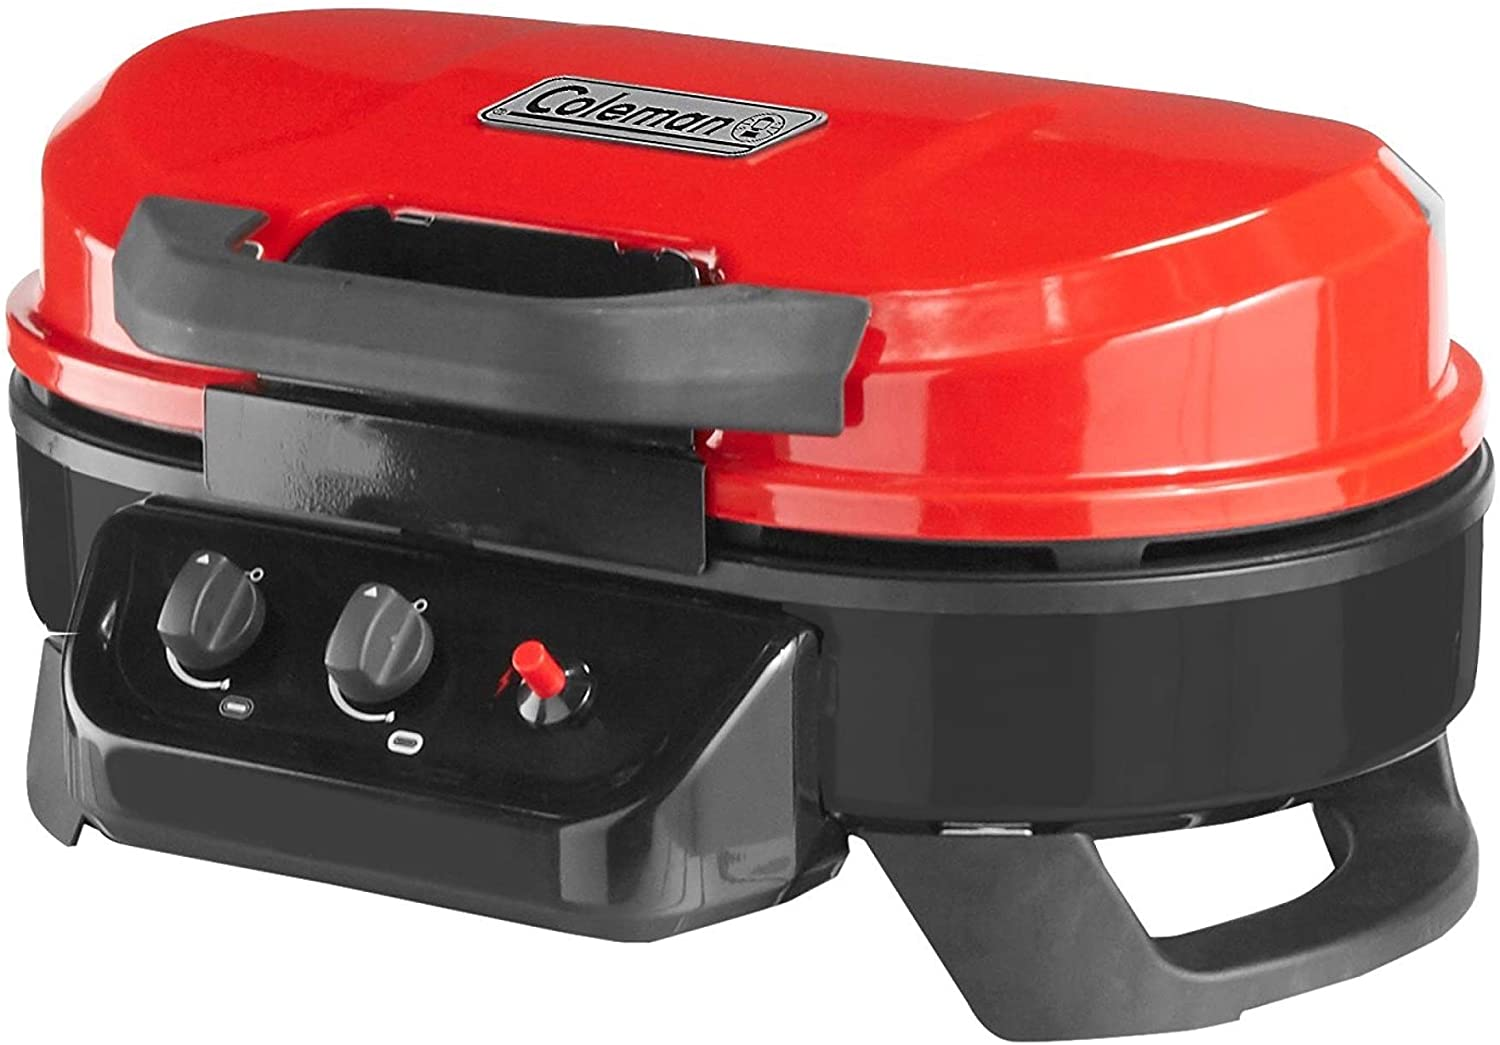 Image of the Coleman portable grill in red and black color.